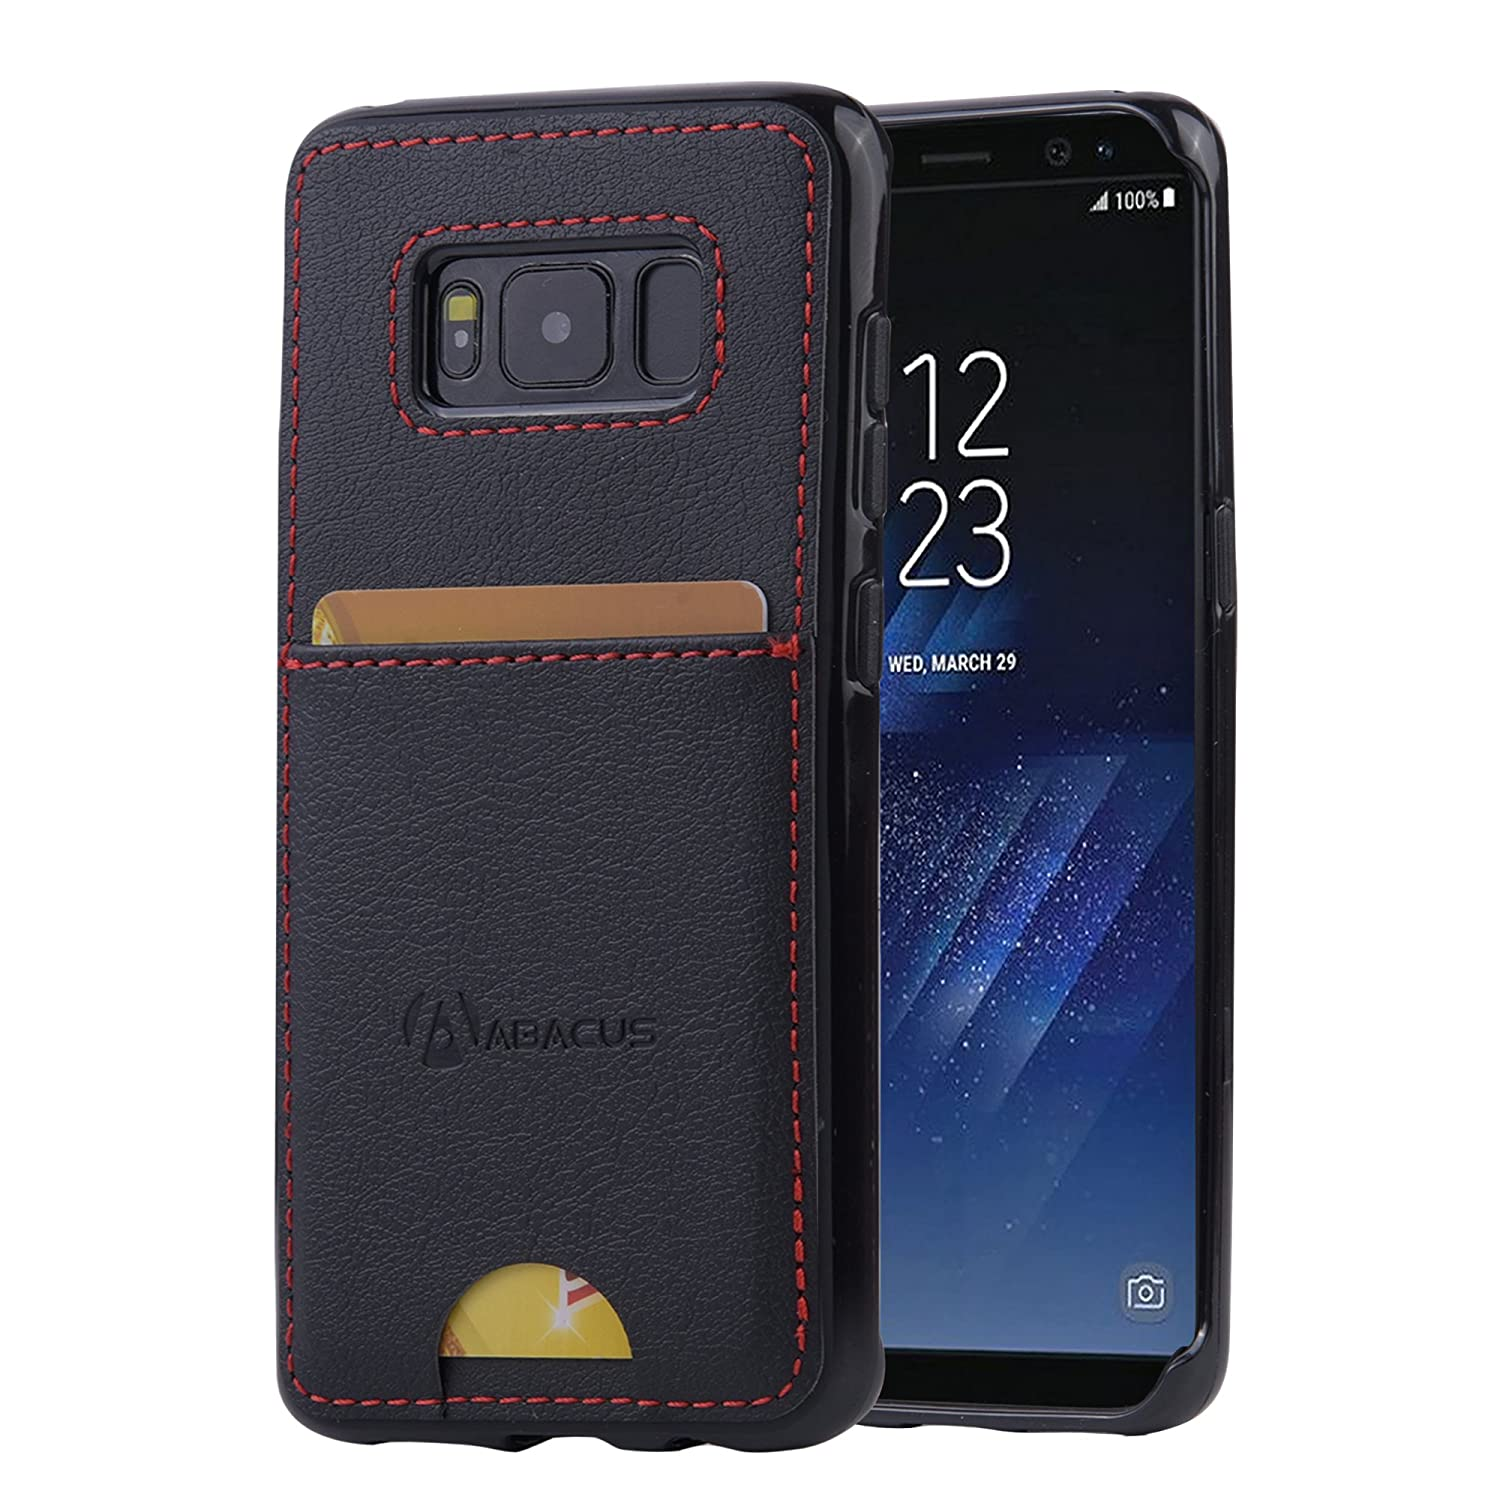 Abacus24-7 Samsung Galaxy S8 Case, S 8 Wallet with RFID Blocking Leather Flip Cover, Black